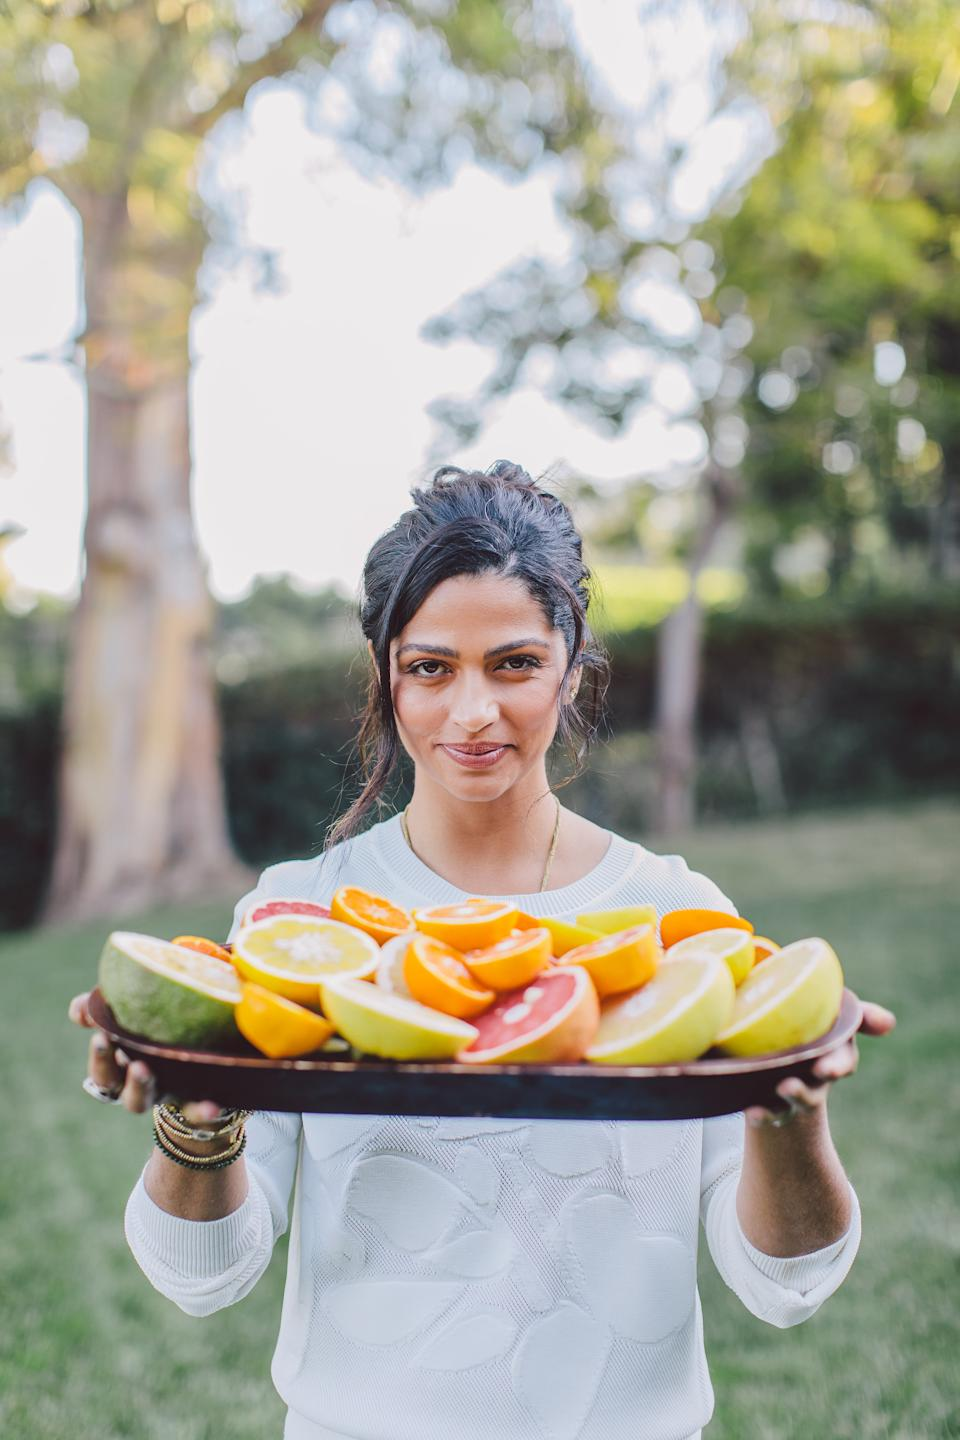 Camila Alves McConaughey recommends eating fruit during your detox: your body naturally occurring sugars differently than added sugars. (Photo: Ashley Burns)